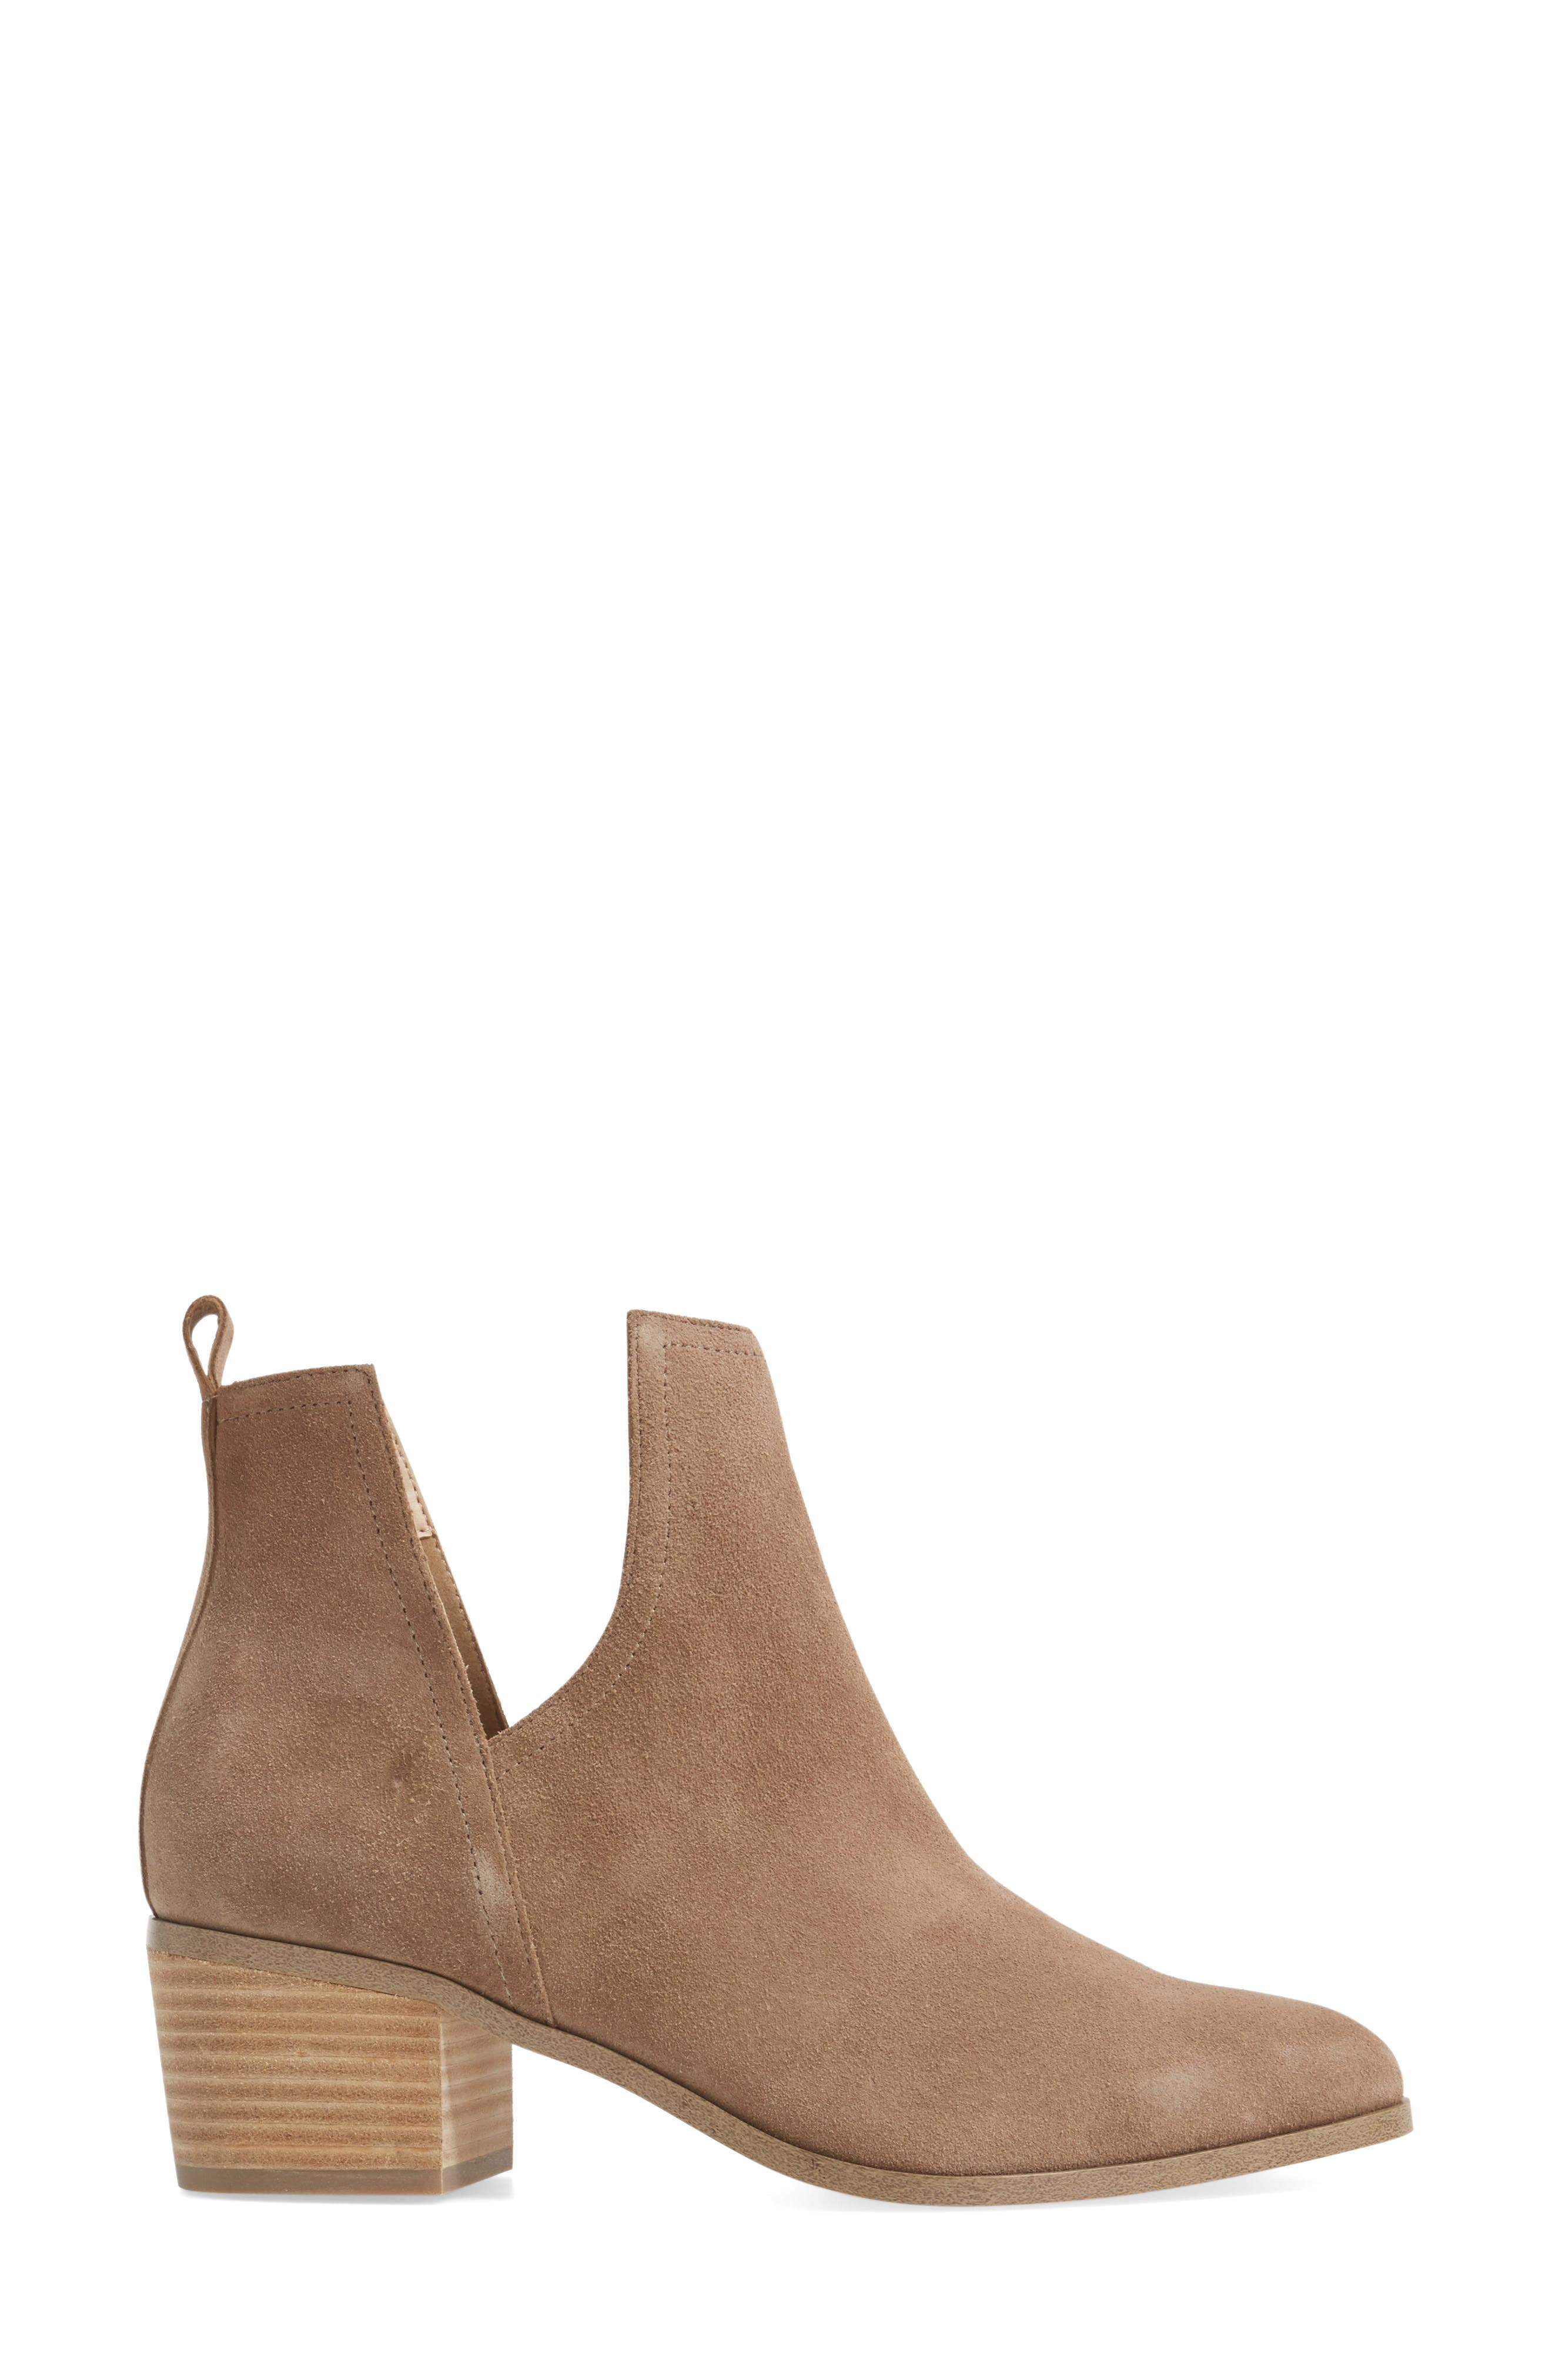 Madrid Bootie,                             Alternate thumbnail 3, color,                             Sand Suede